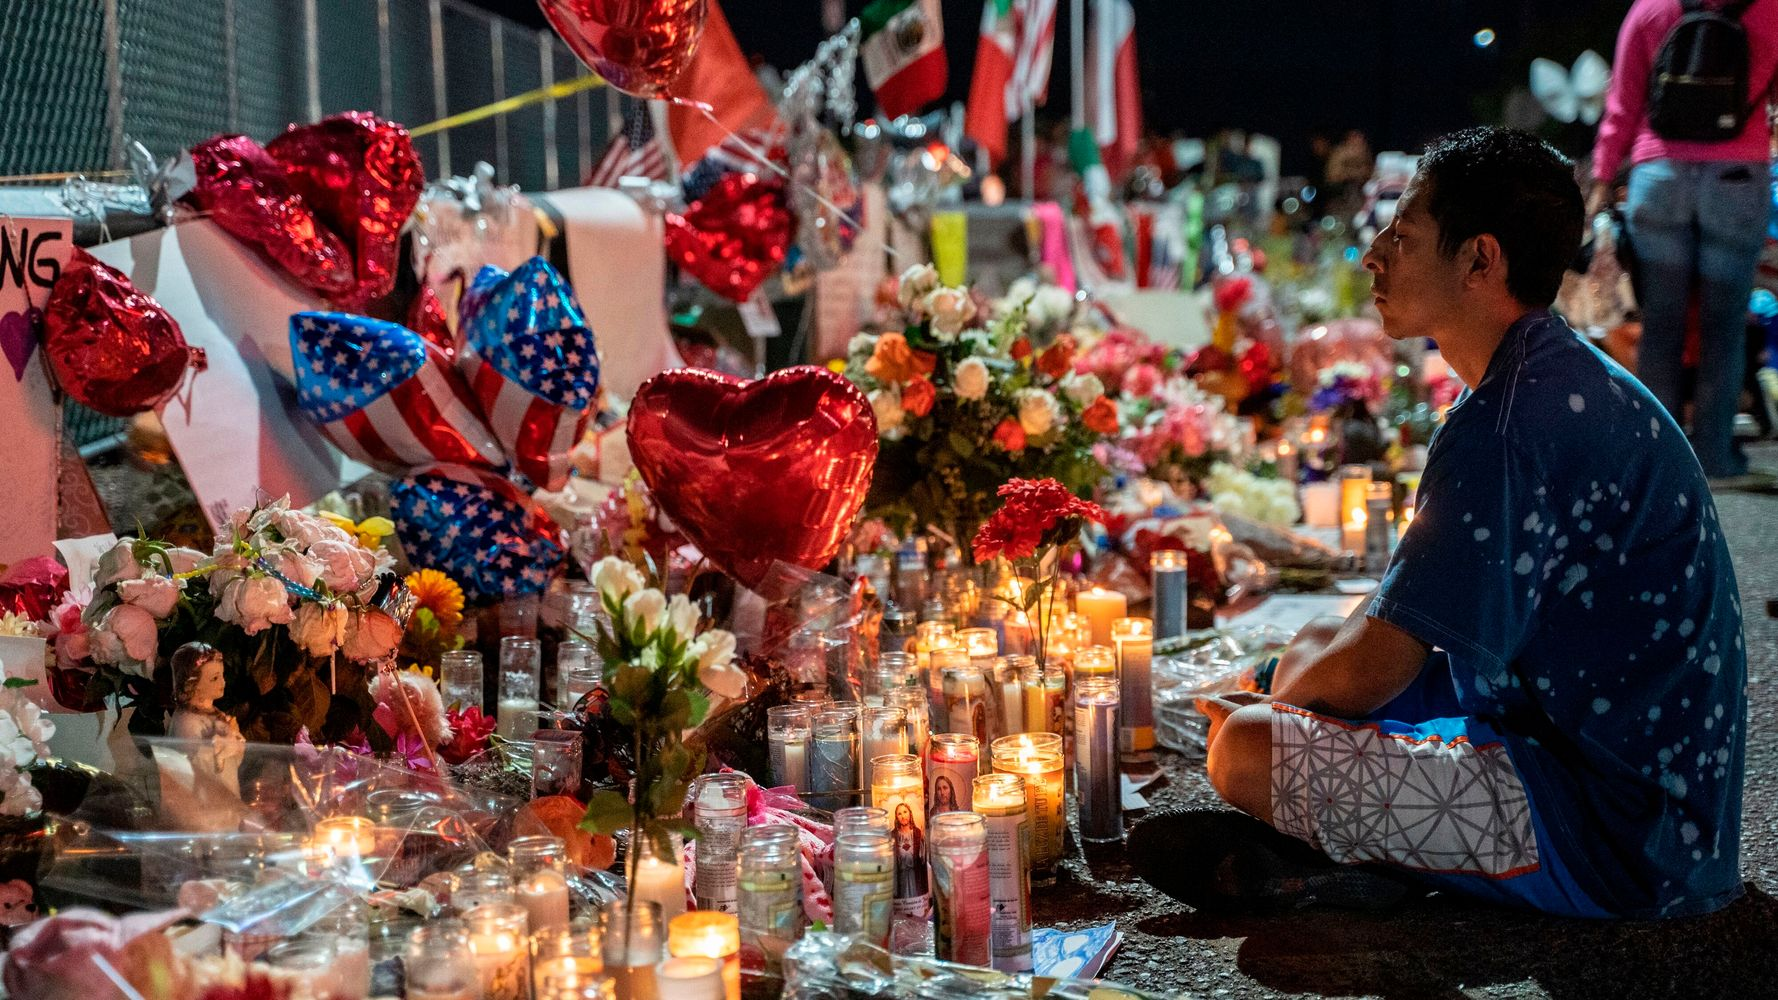 2019 Was The Deadliest Year For Hate Crimes On Record, New FBI Data Shows